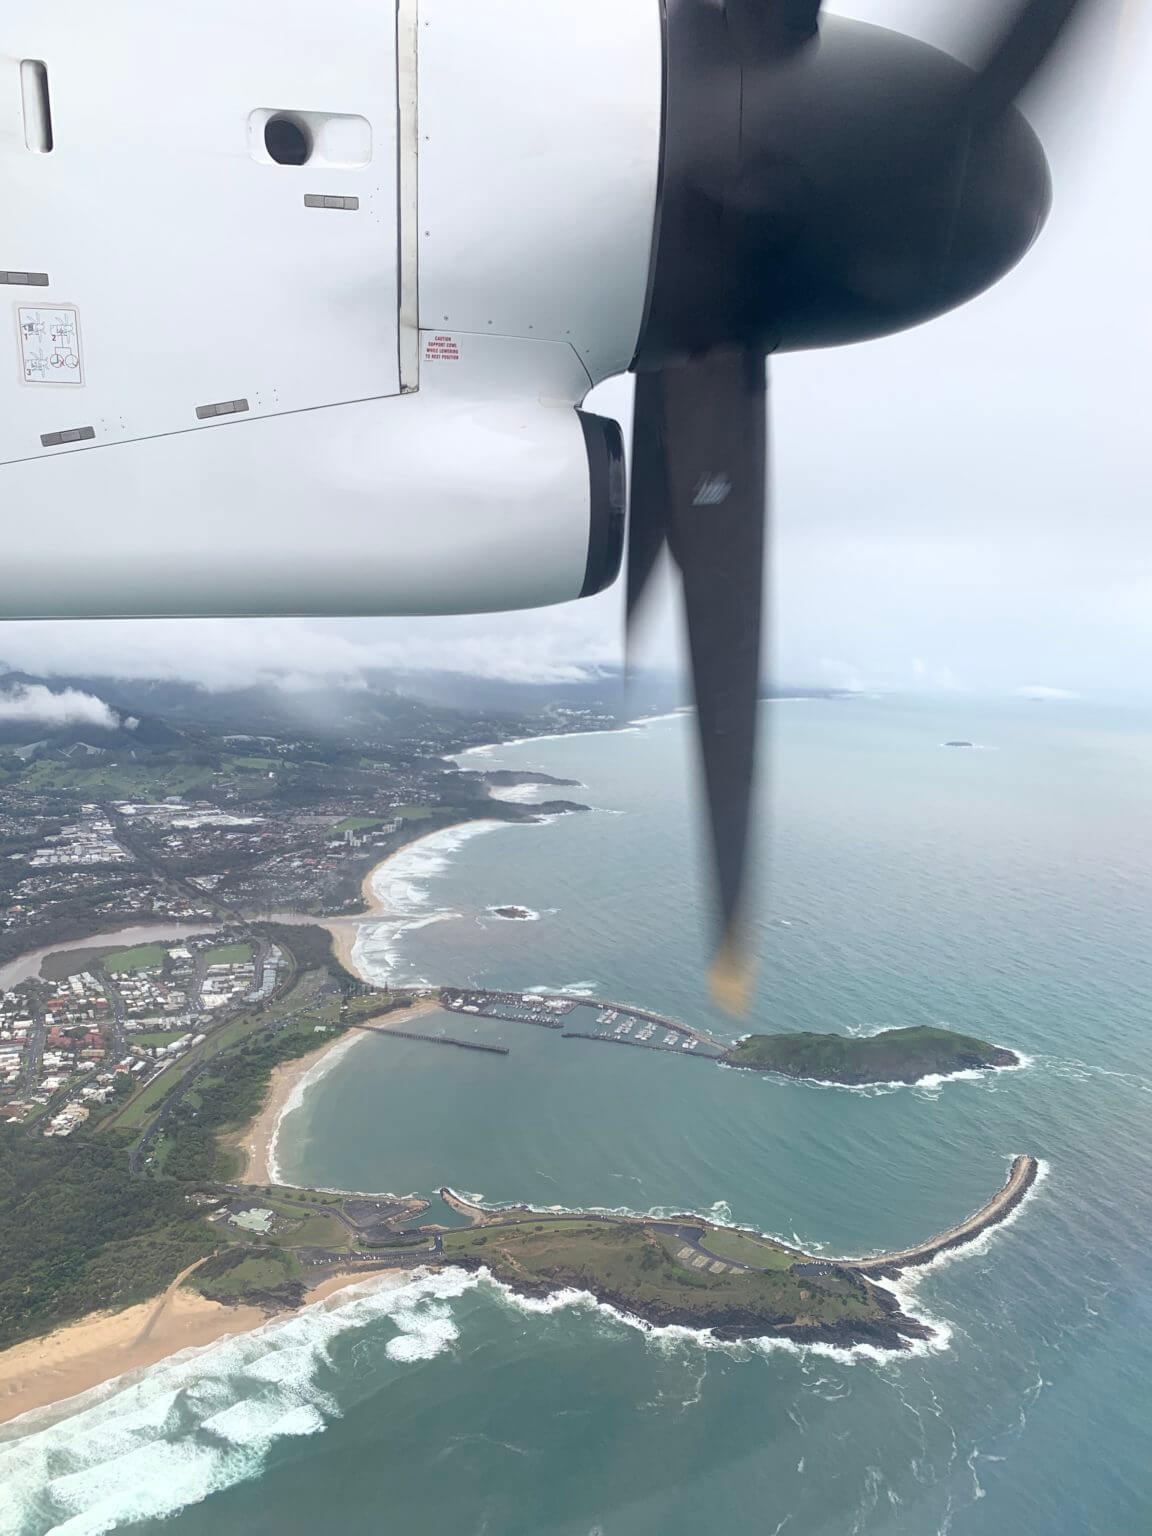 View of the coast from the airplane window.